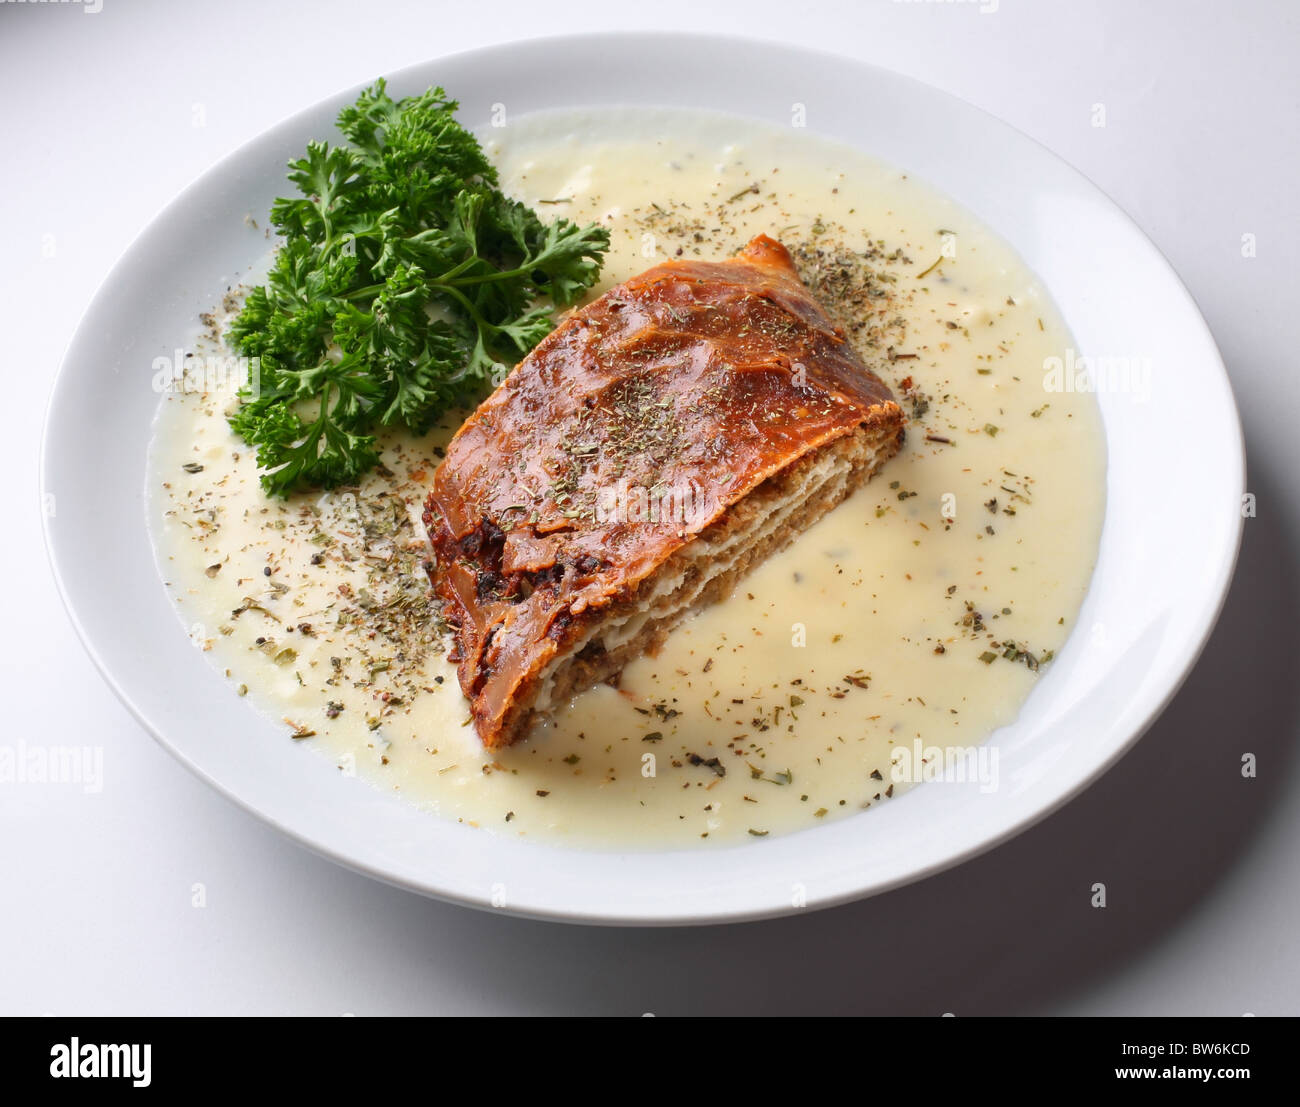 pasty with a meat - Stock Image